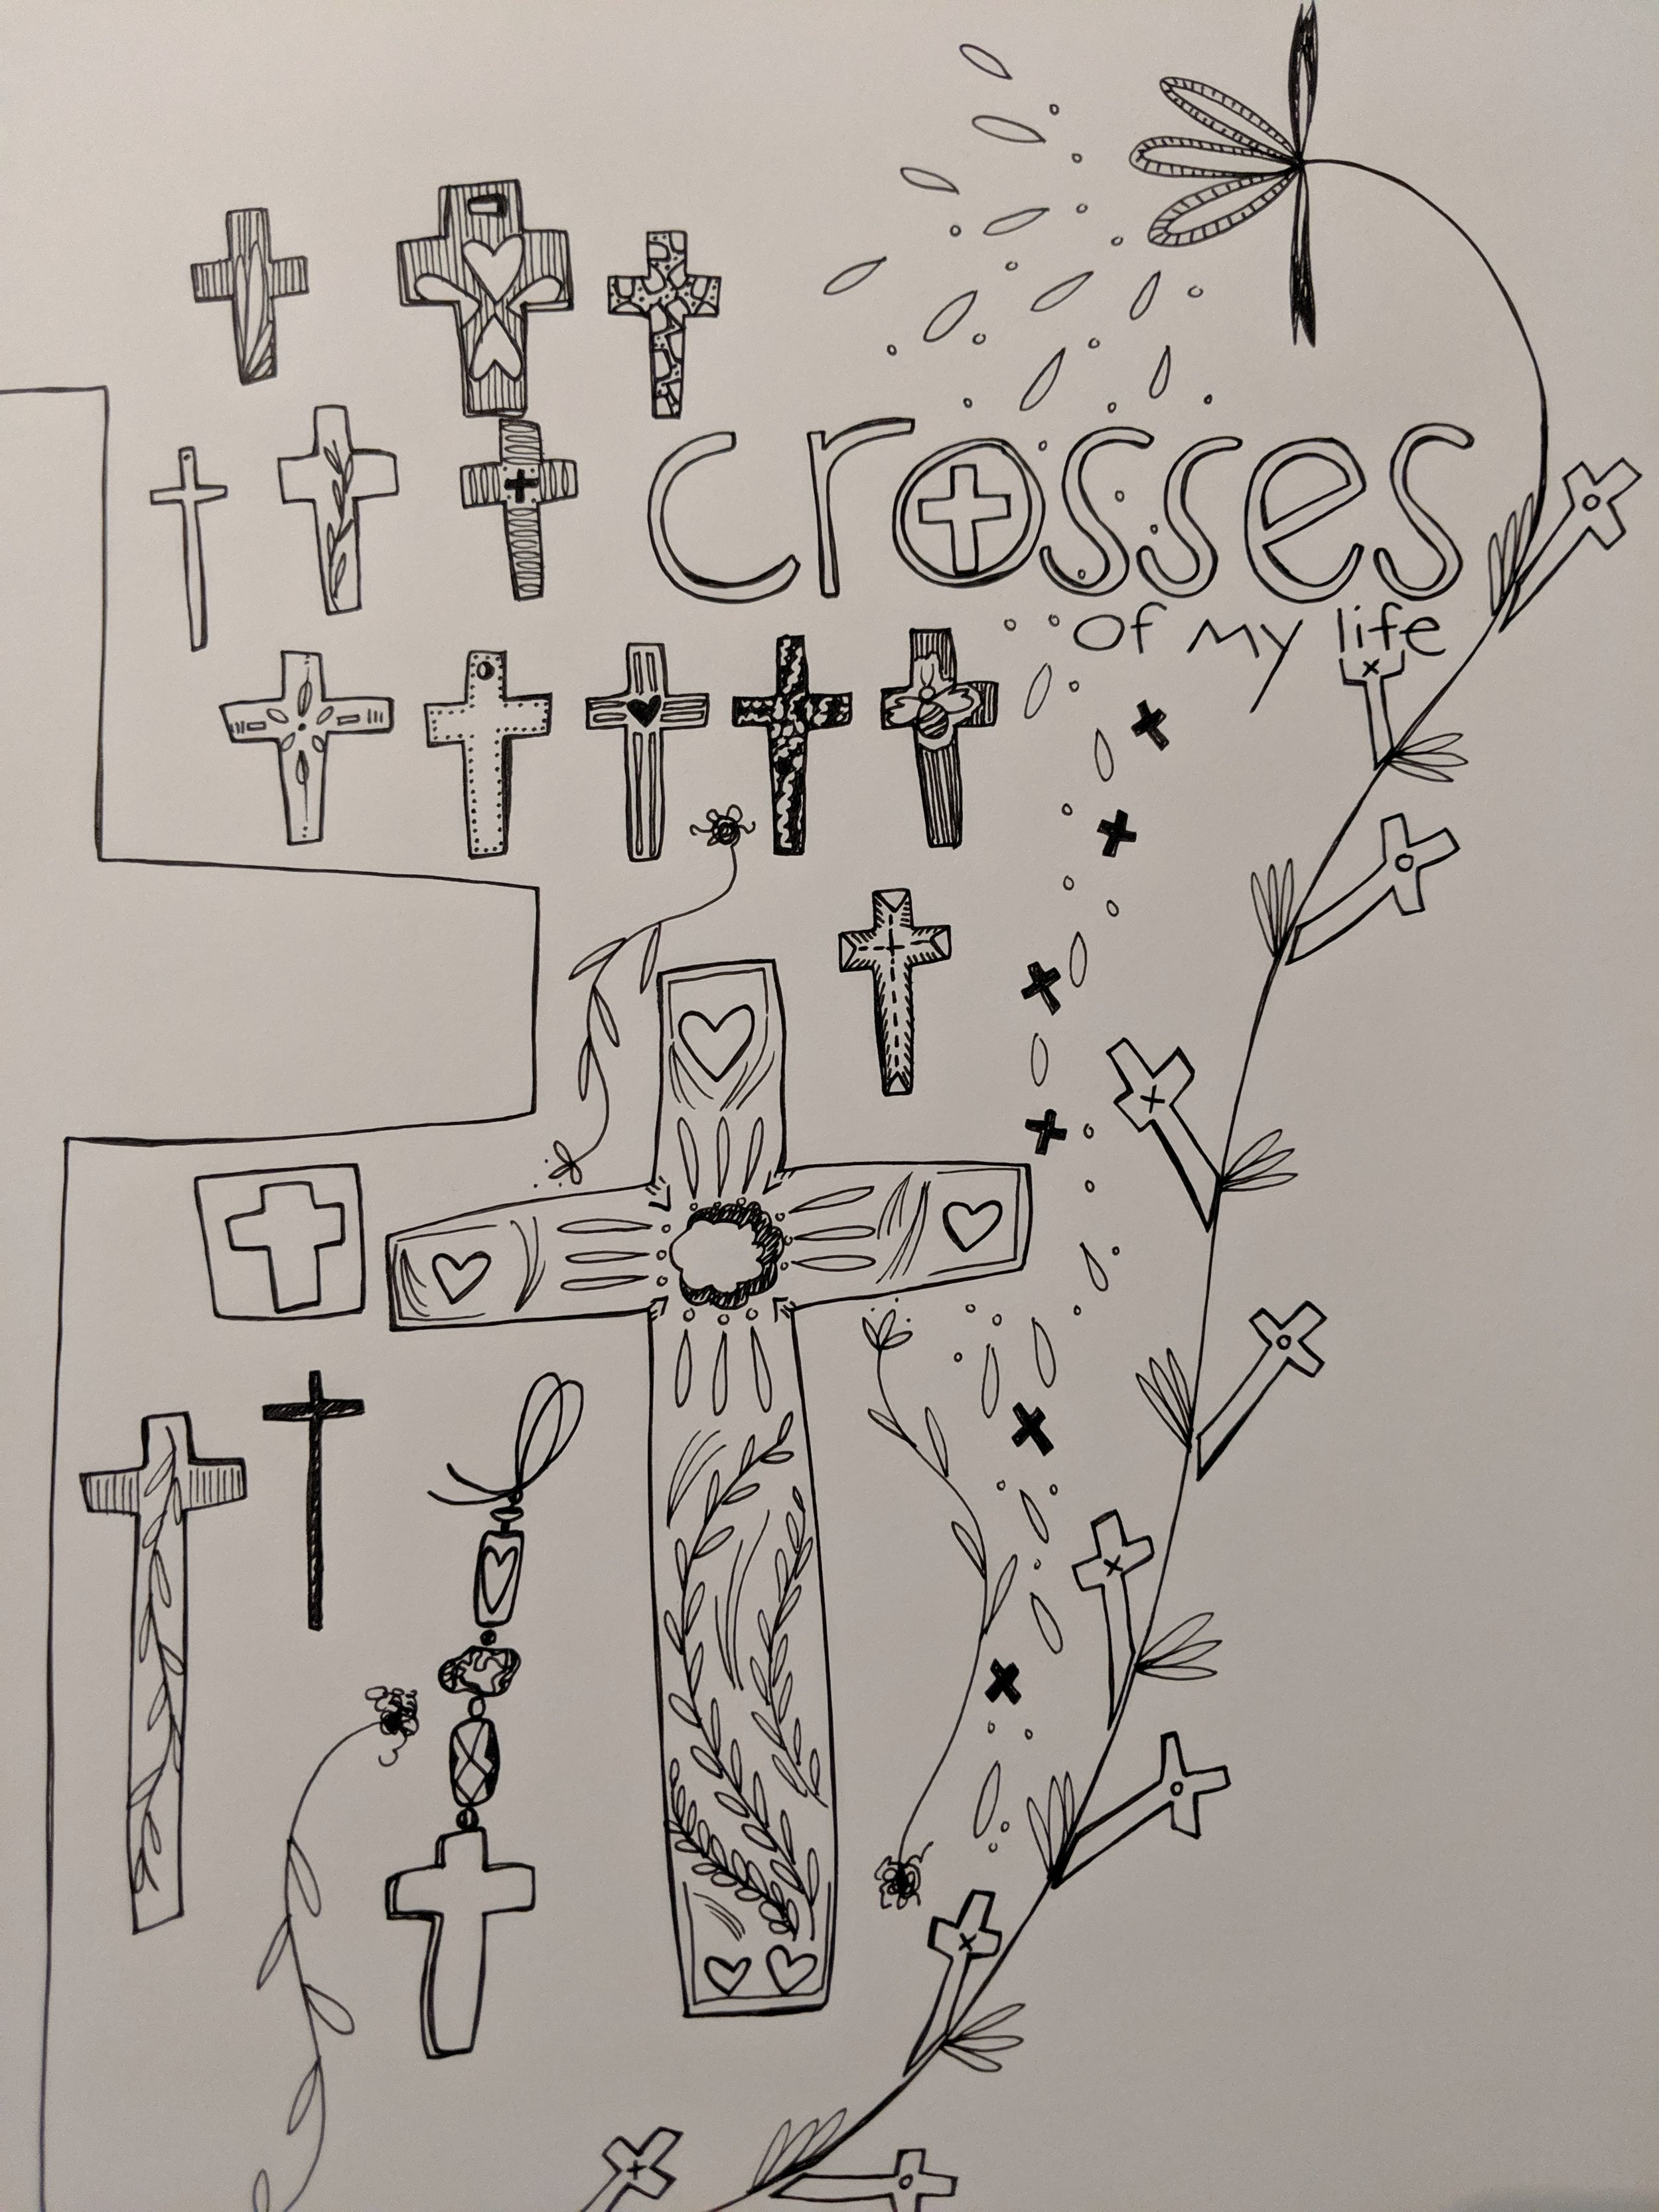 Way back when, it all started with drawing crosses. The crosses I drew became bookmarks and lent favors with a few children's bible study classes on Wednesday nights. Sweet memories I hold dear.